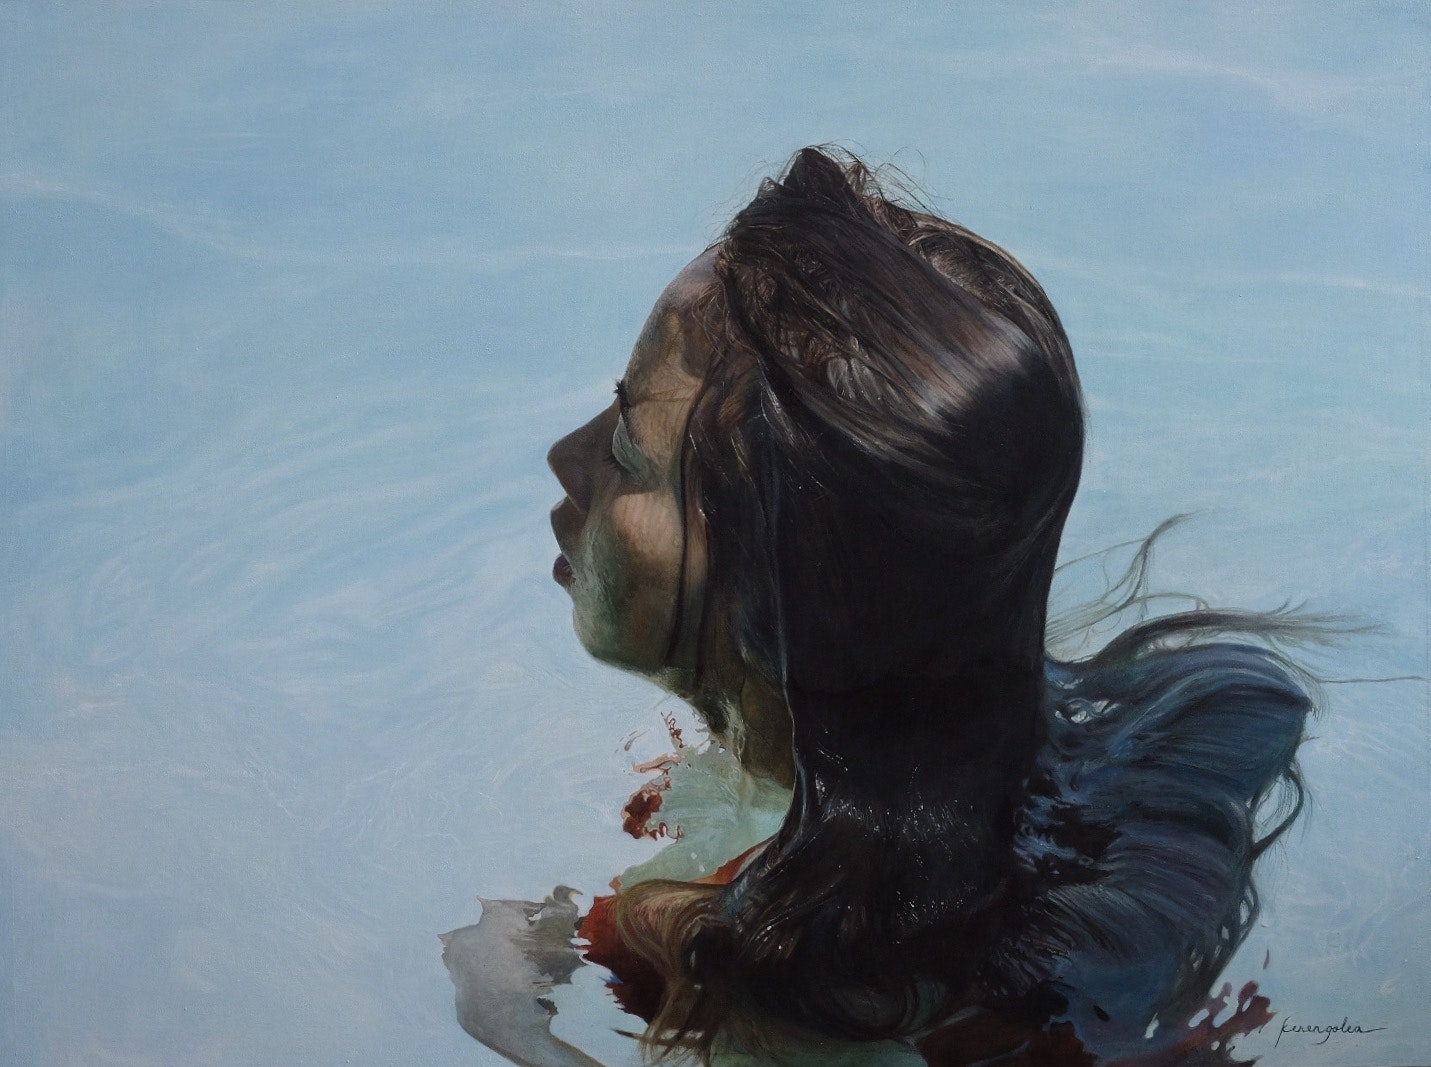 'Emergence', Keren Hannah Golea, Oil on linen, 92 x 122 cm